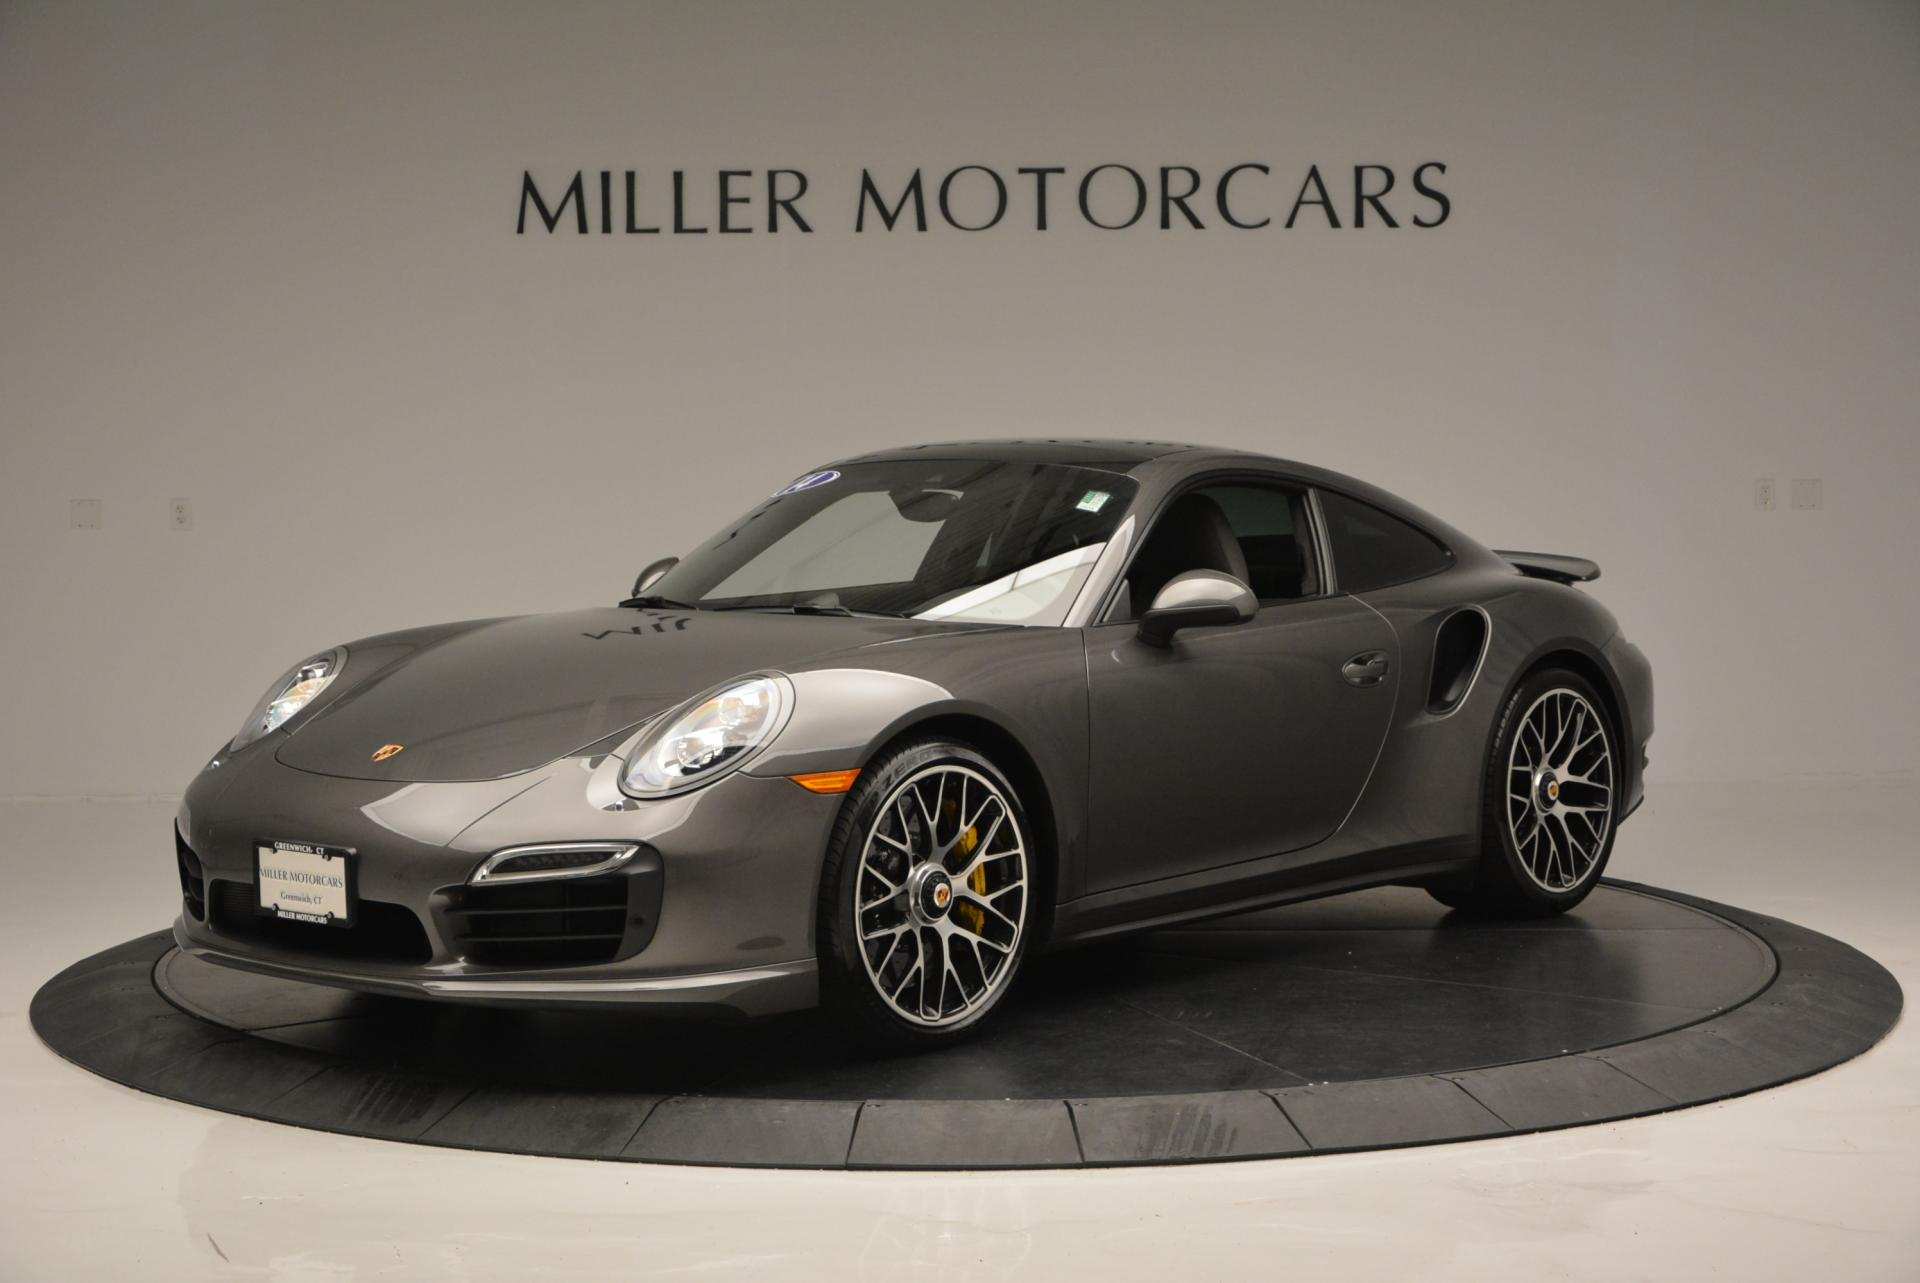 Used 2014 Porsche 911 Turbo S For Sale In Greenwich, CT 113_p2